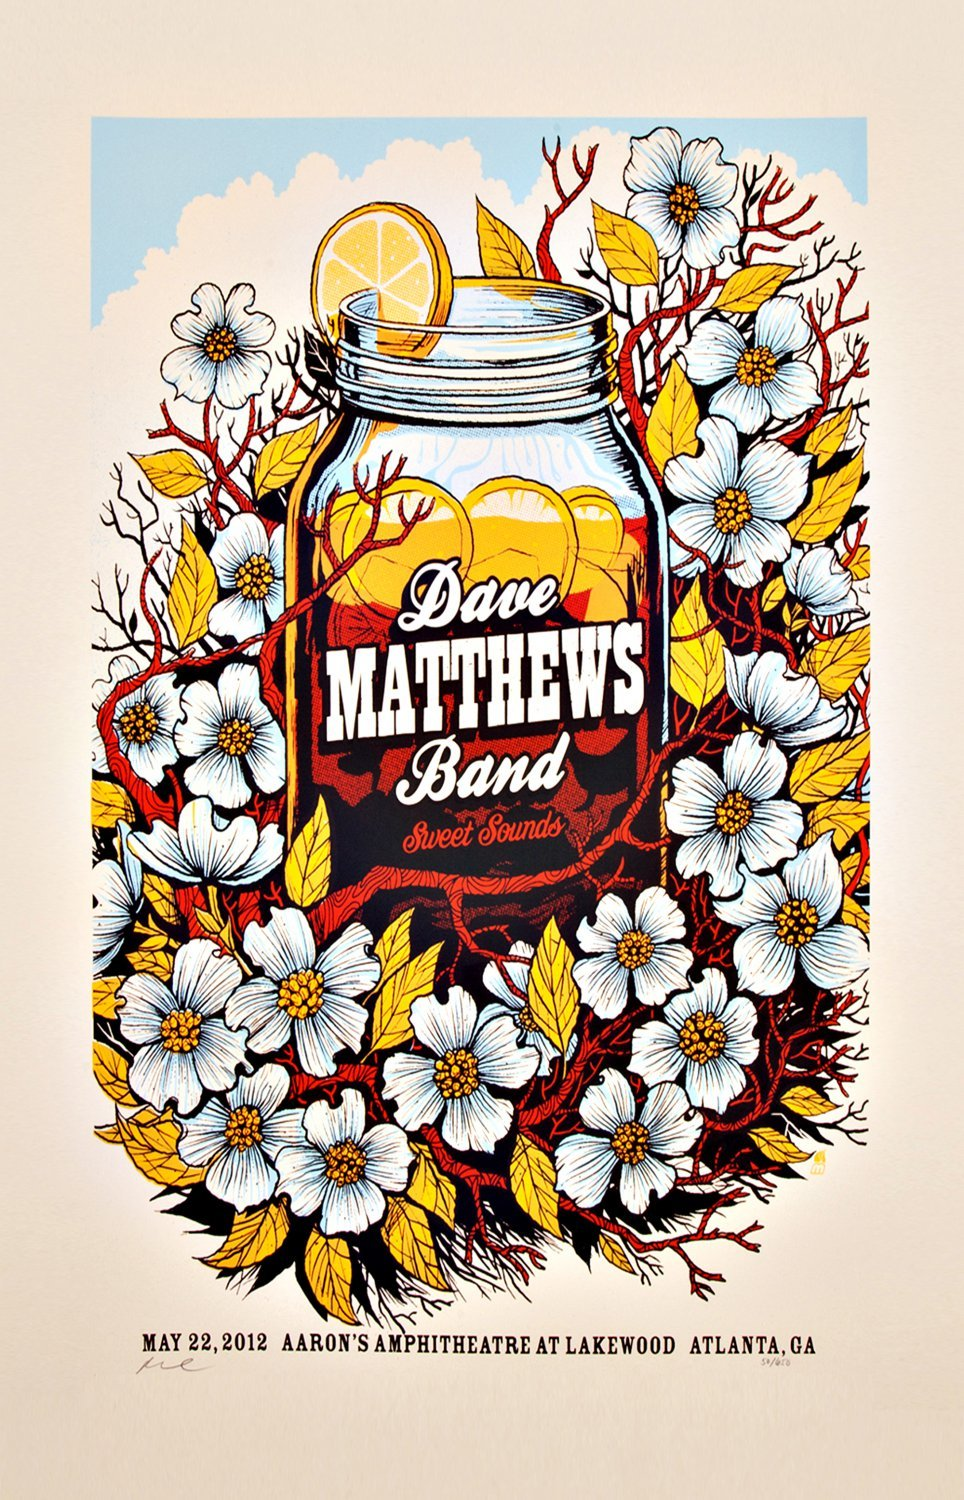 Dave Matthews Band Sweet Sounds  13x19 inches Poster Print